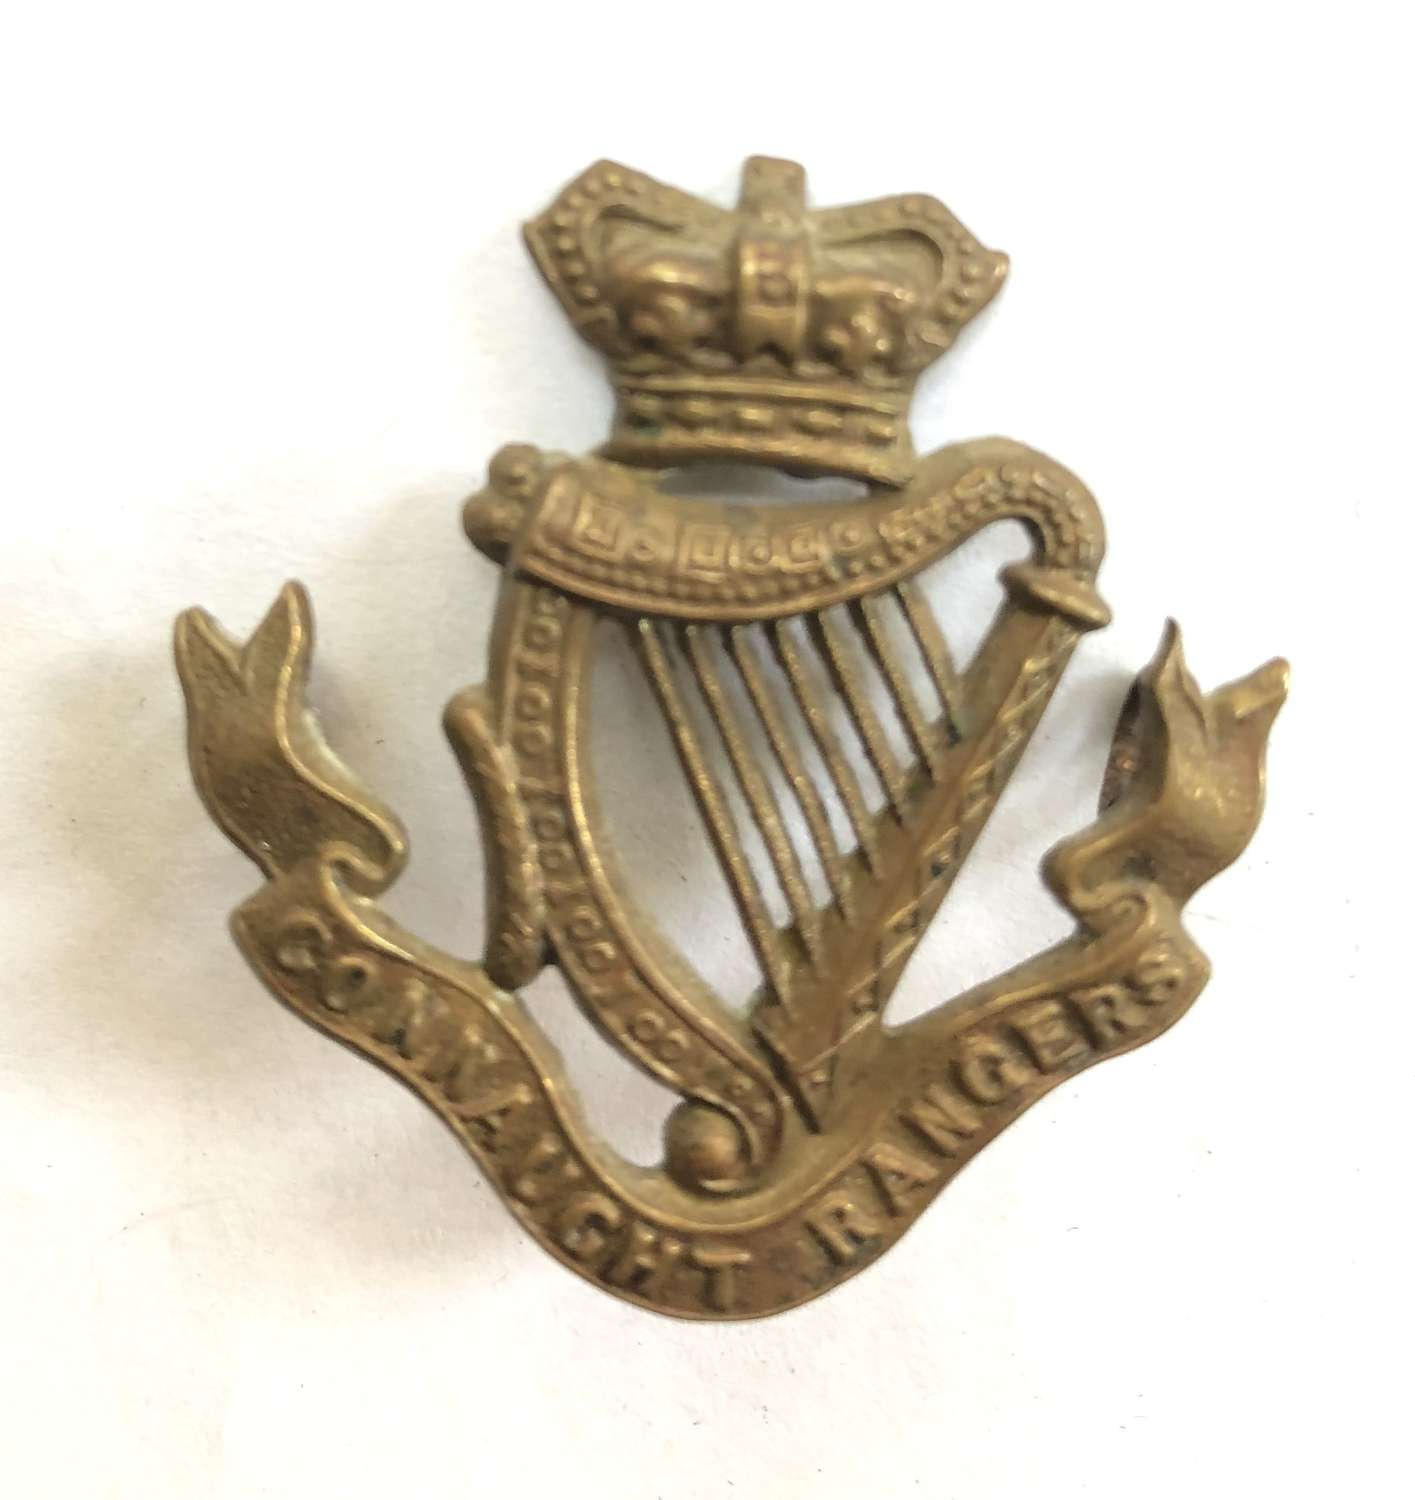 Connaught Rangers Victorian cap badge C1896-1901